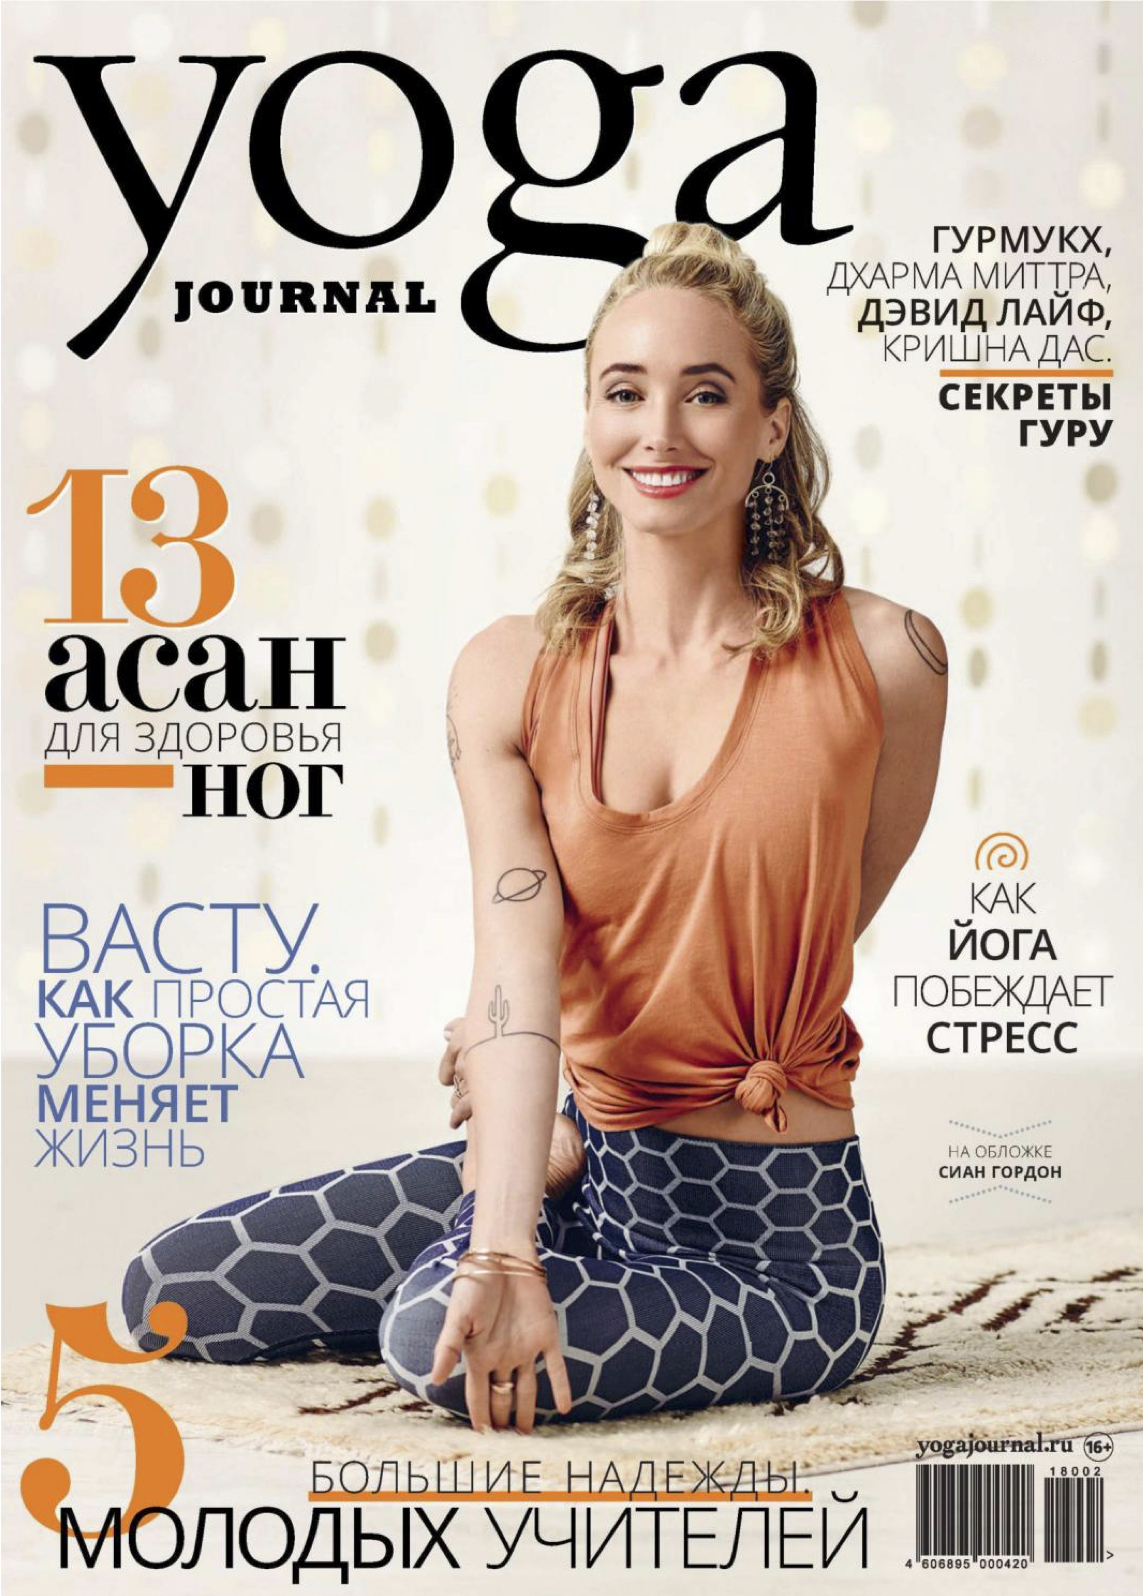 Публикация в Yoga Journal